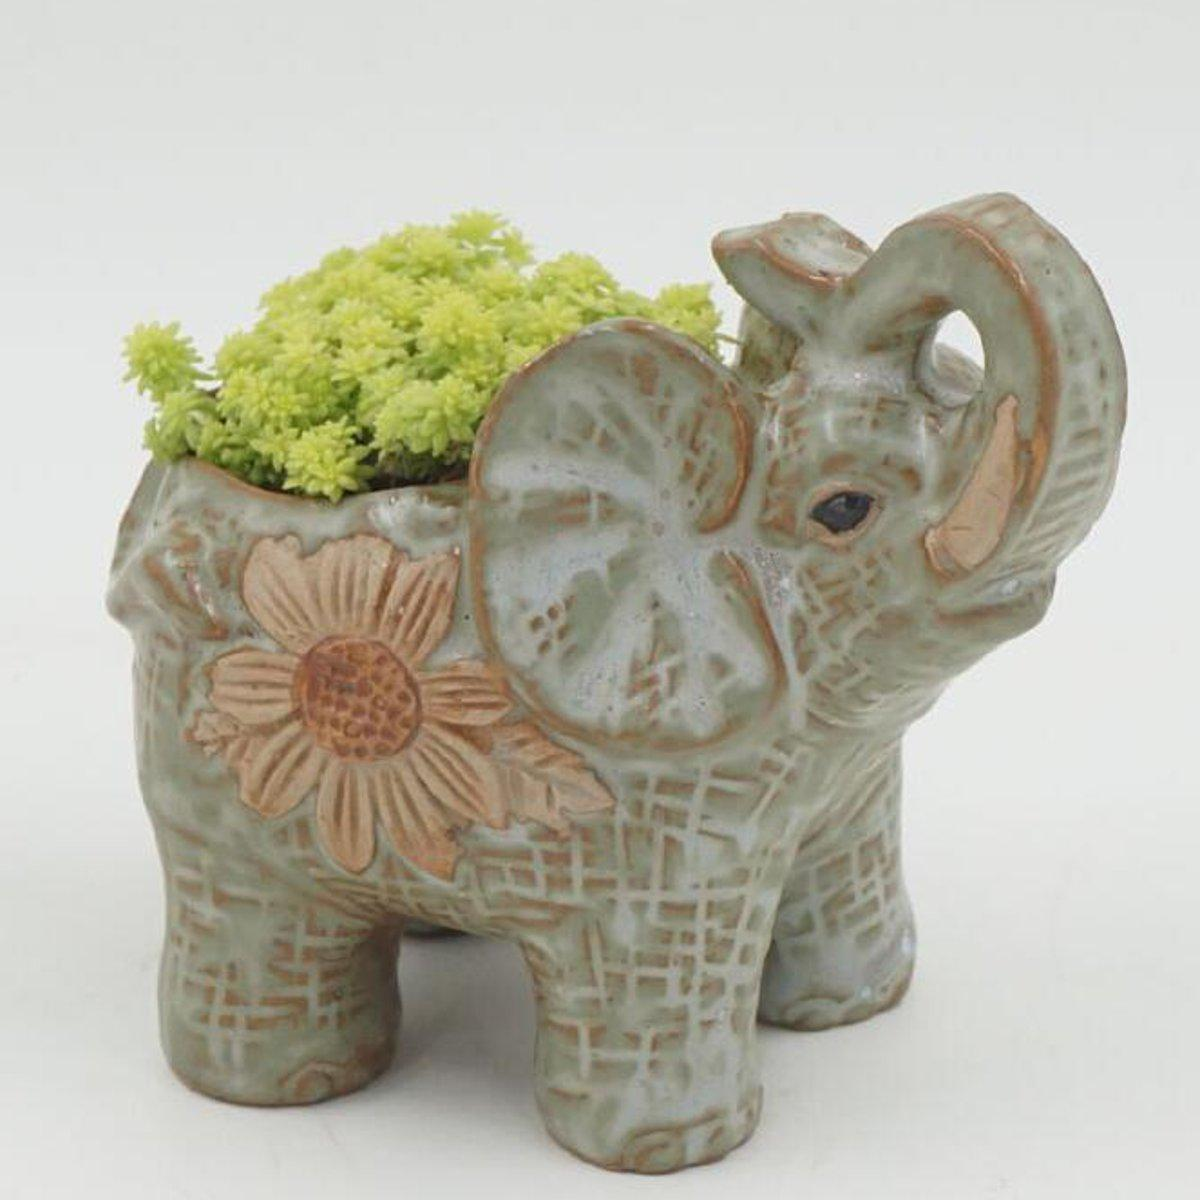 decoration china discount dhgate vintage garden bonsai home plant pots flower planter product from ceramic elephant mini pot succulent supplies supply cacti